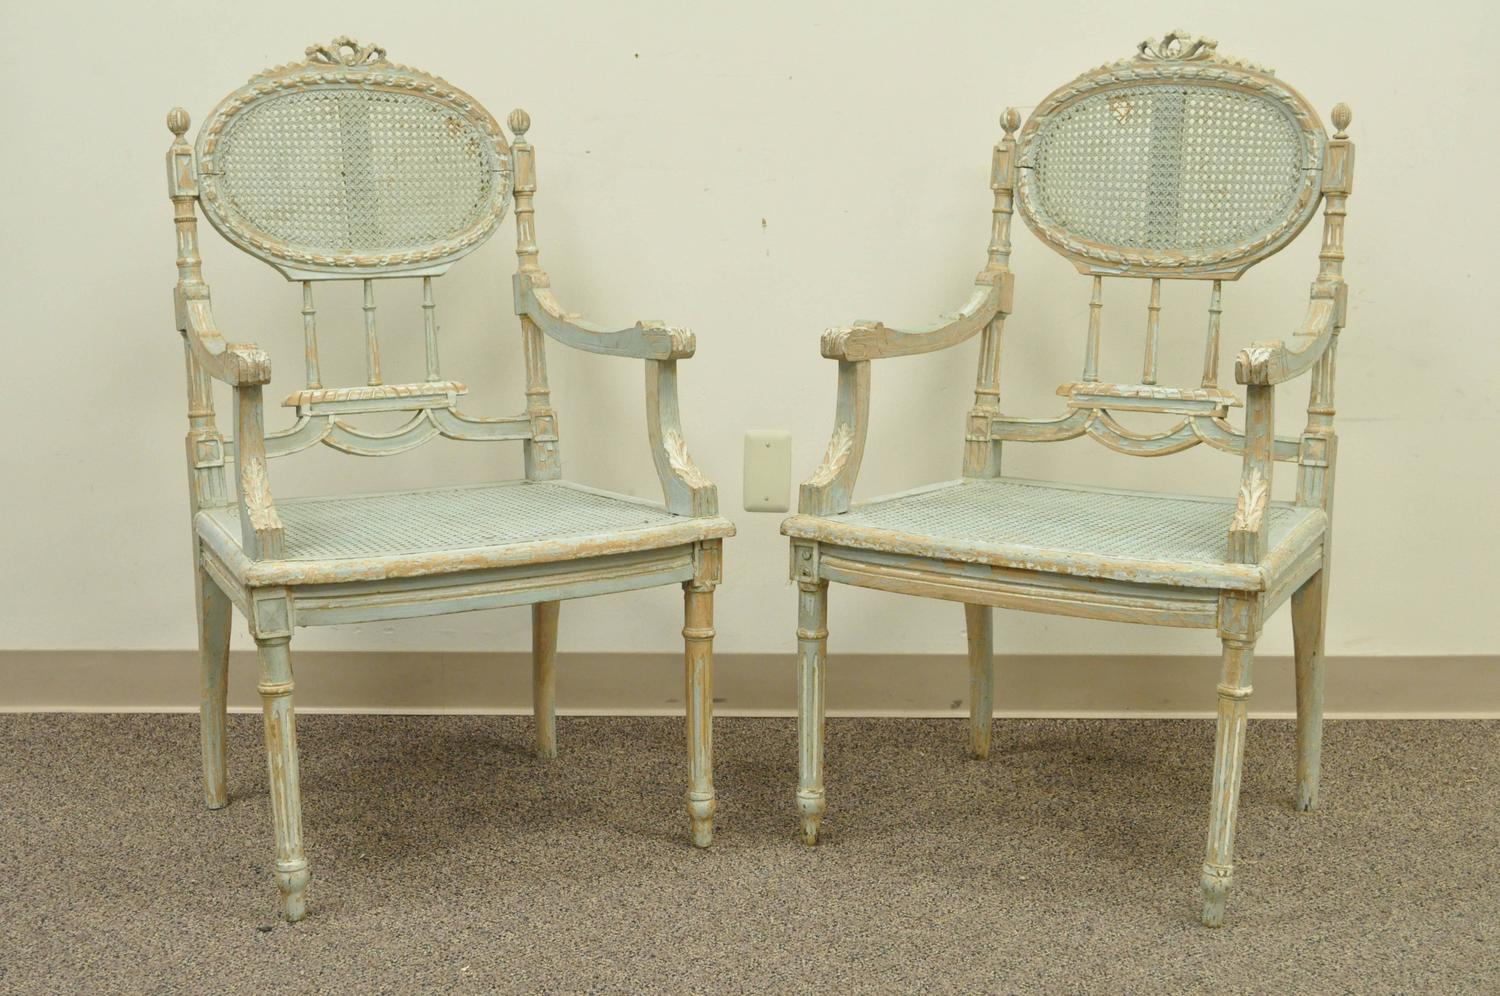 5 Piece French Louis Xvi Style Distress Painted Parlor Or